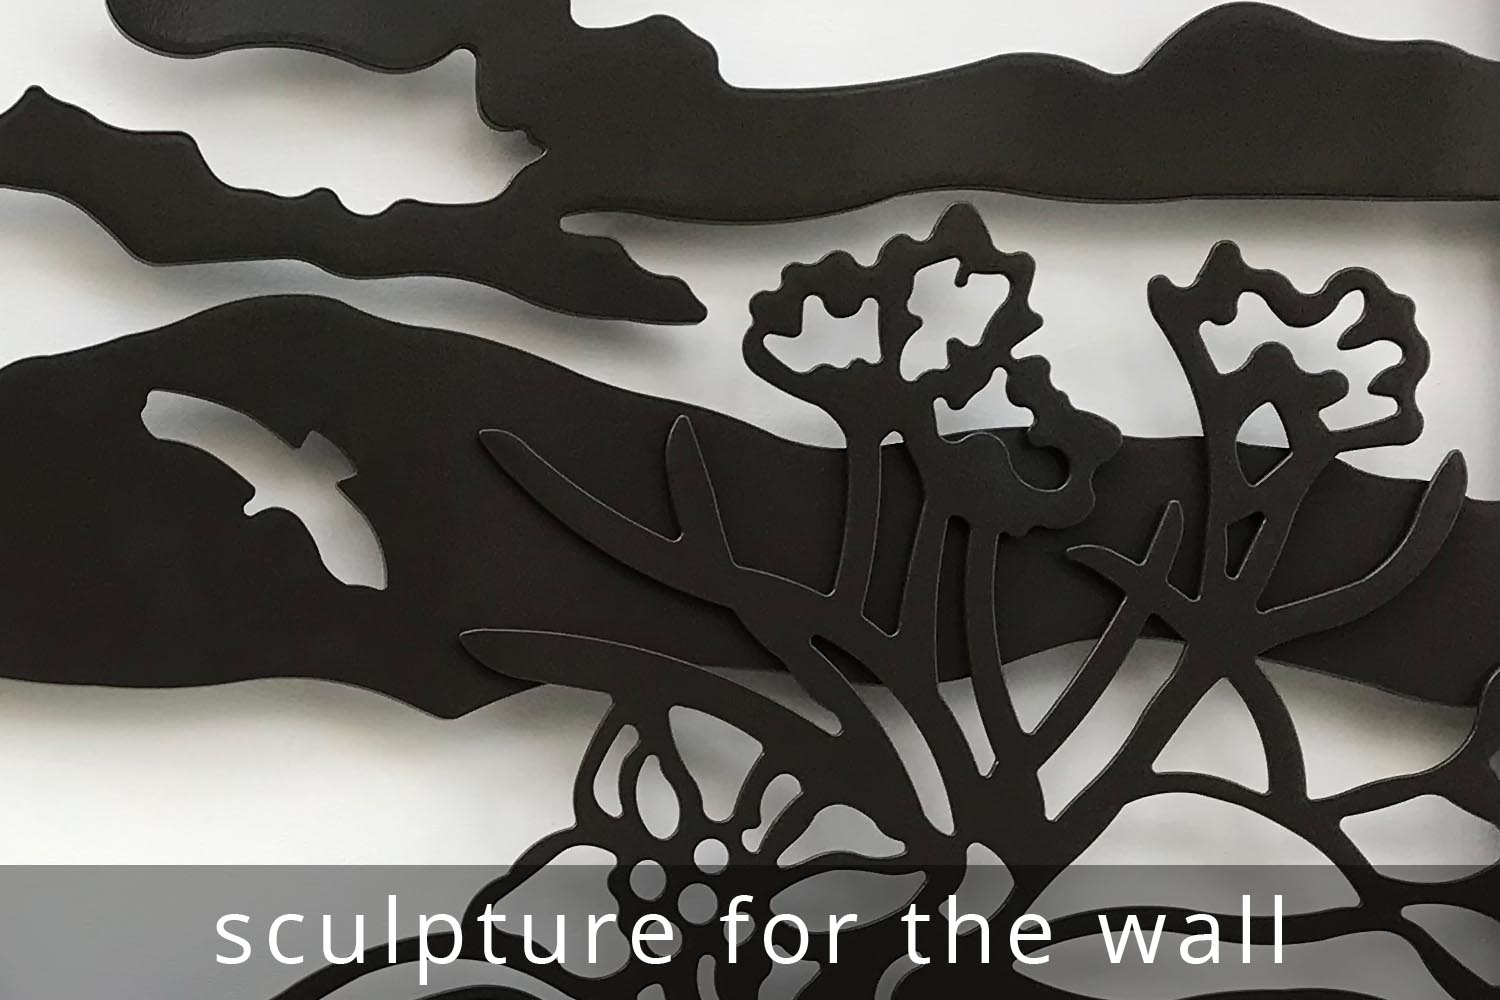 sculpture for the wall